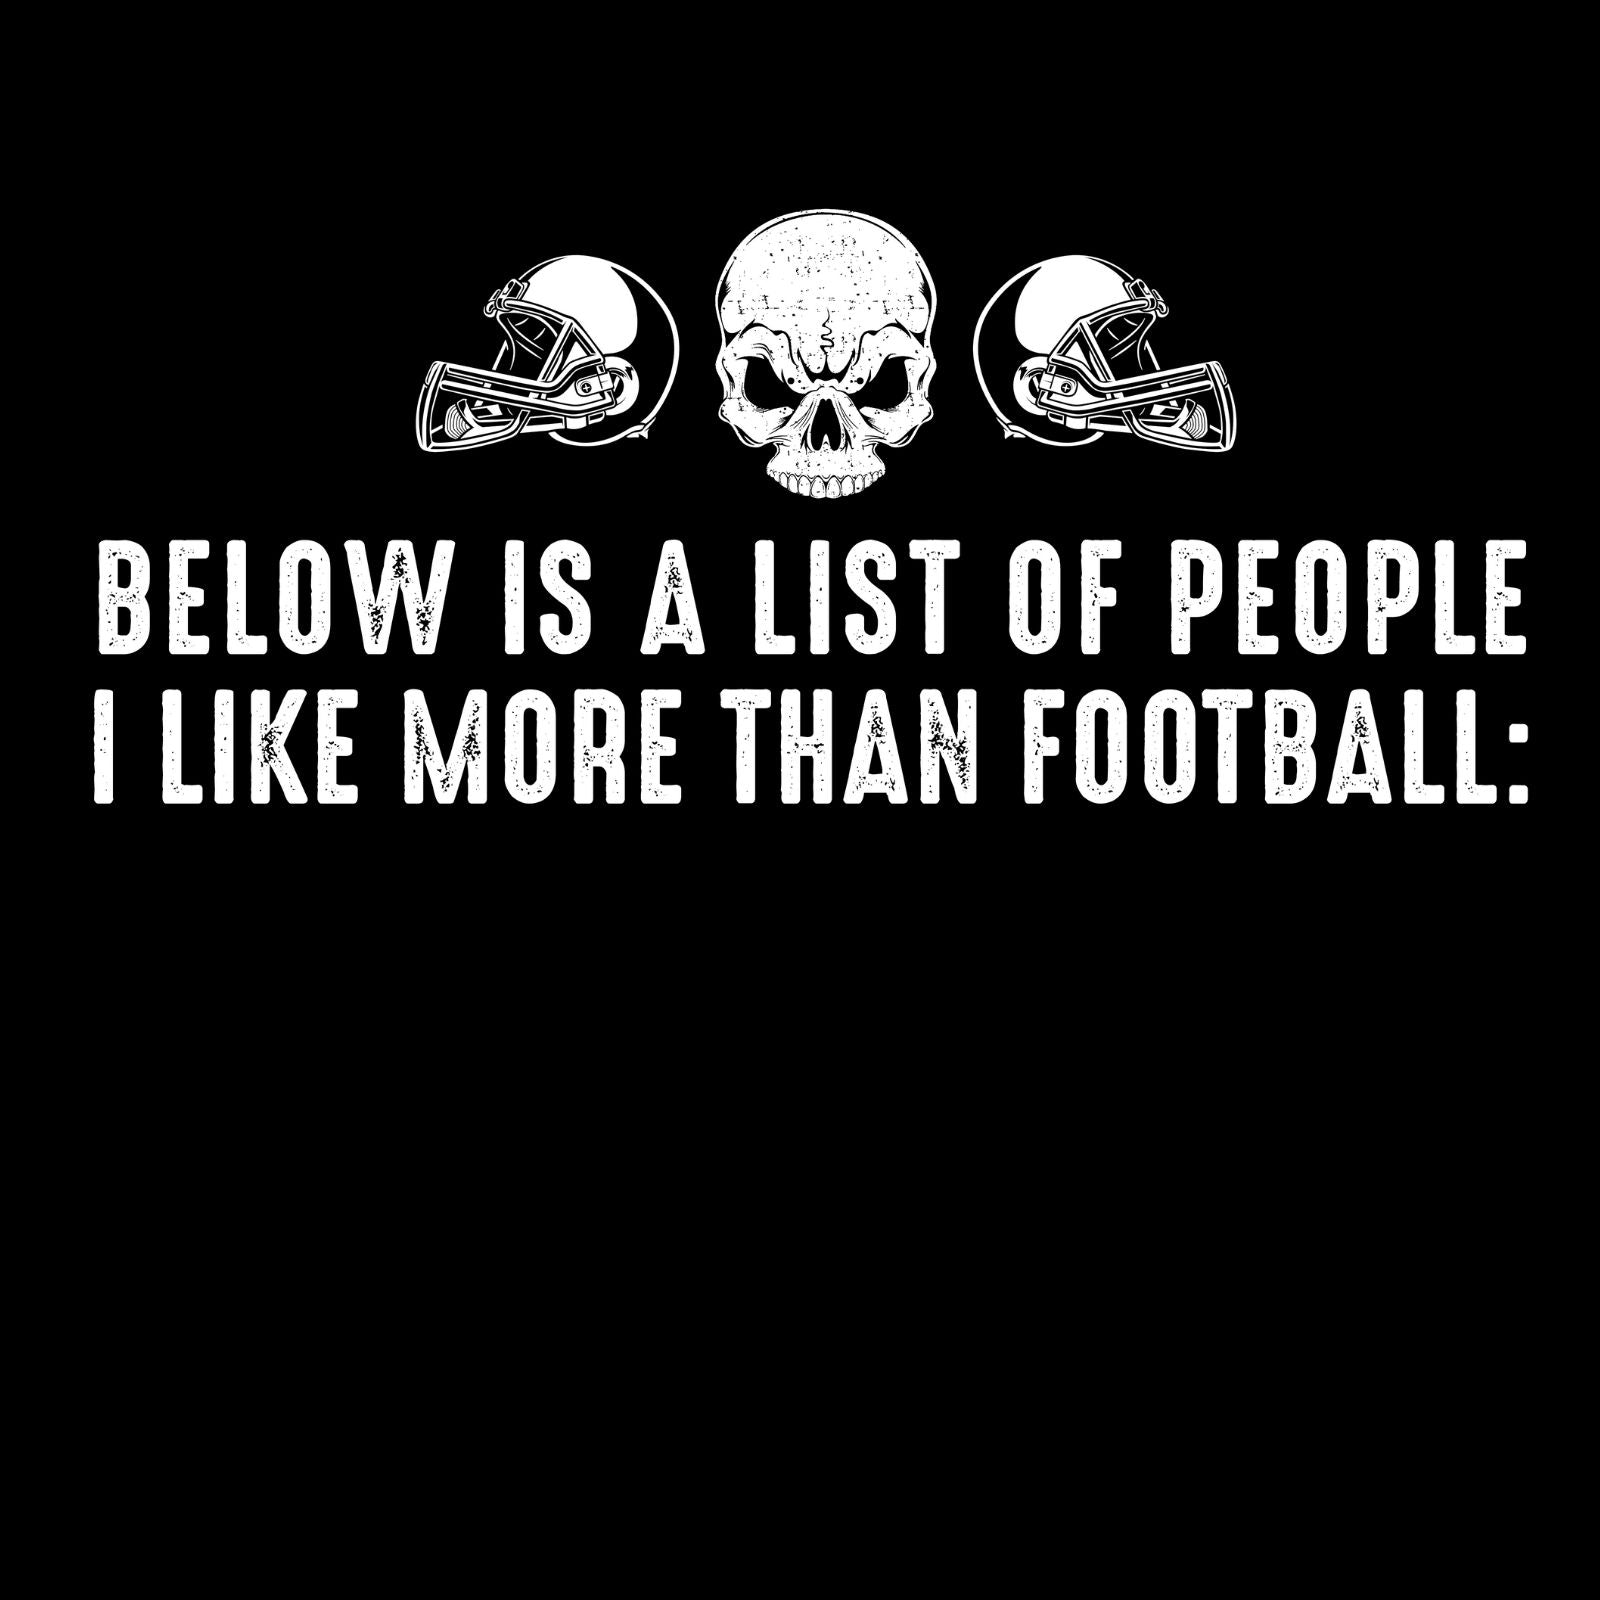 Below Is A List Of People I Like Better Than Football - Bastard Graphics